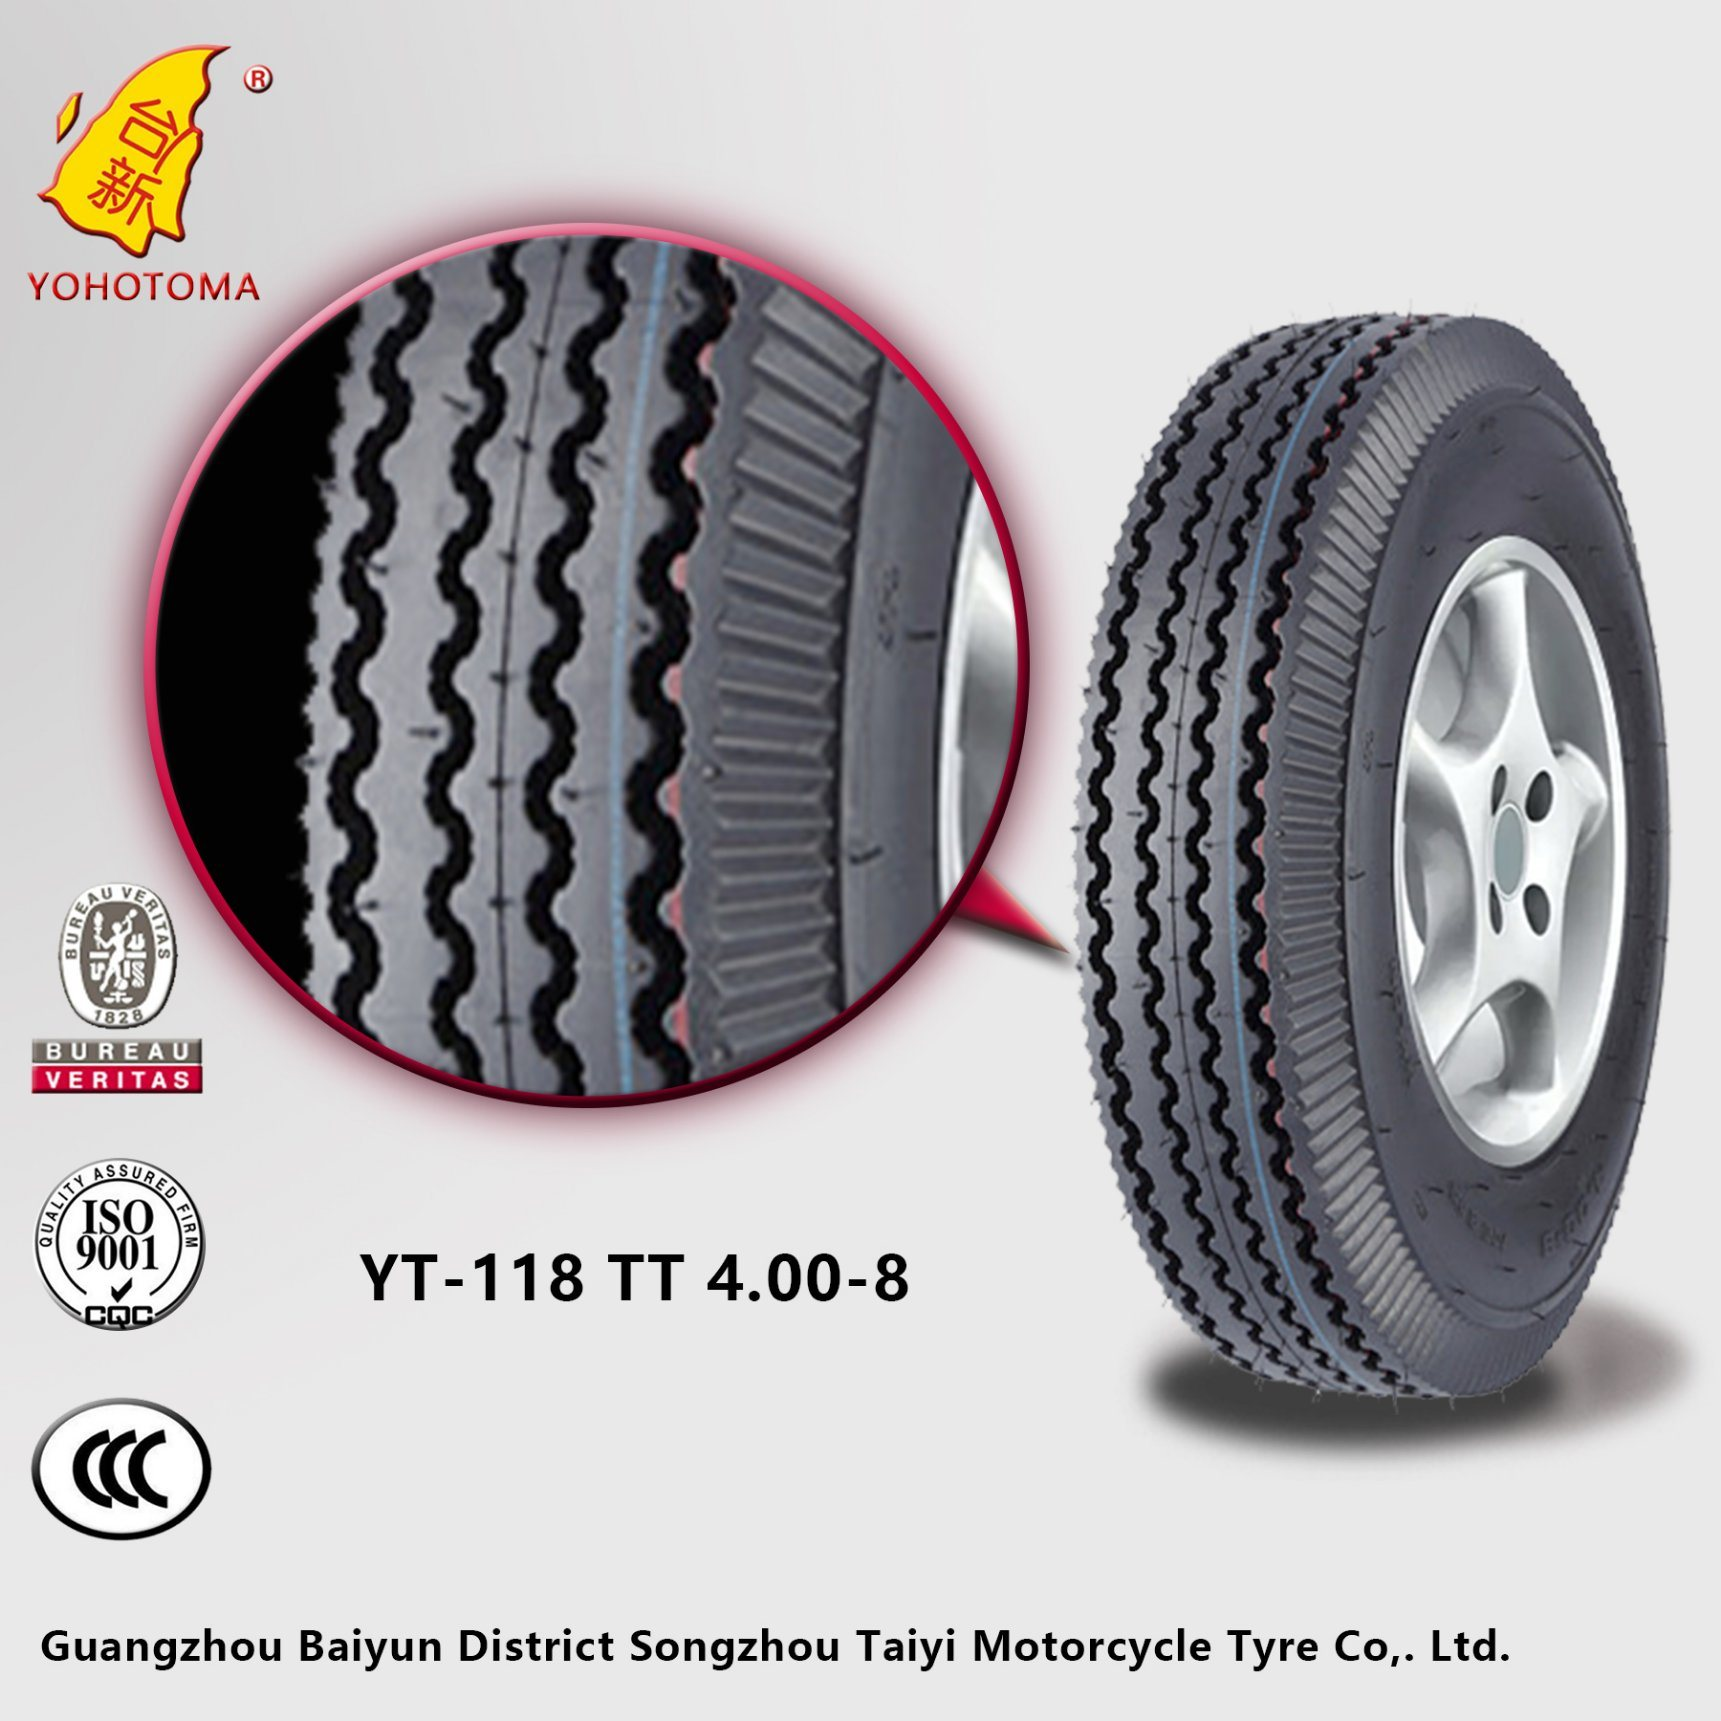 Low Price Motor Tyre Suit for Africa Market (YT2) 400-8 Yt-118 Tt